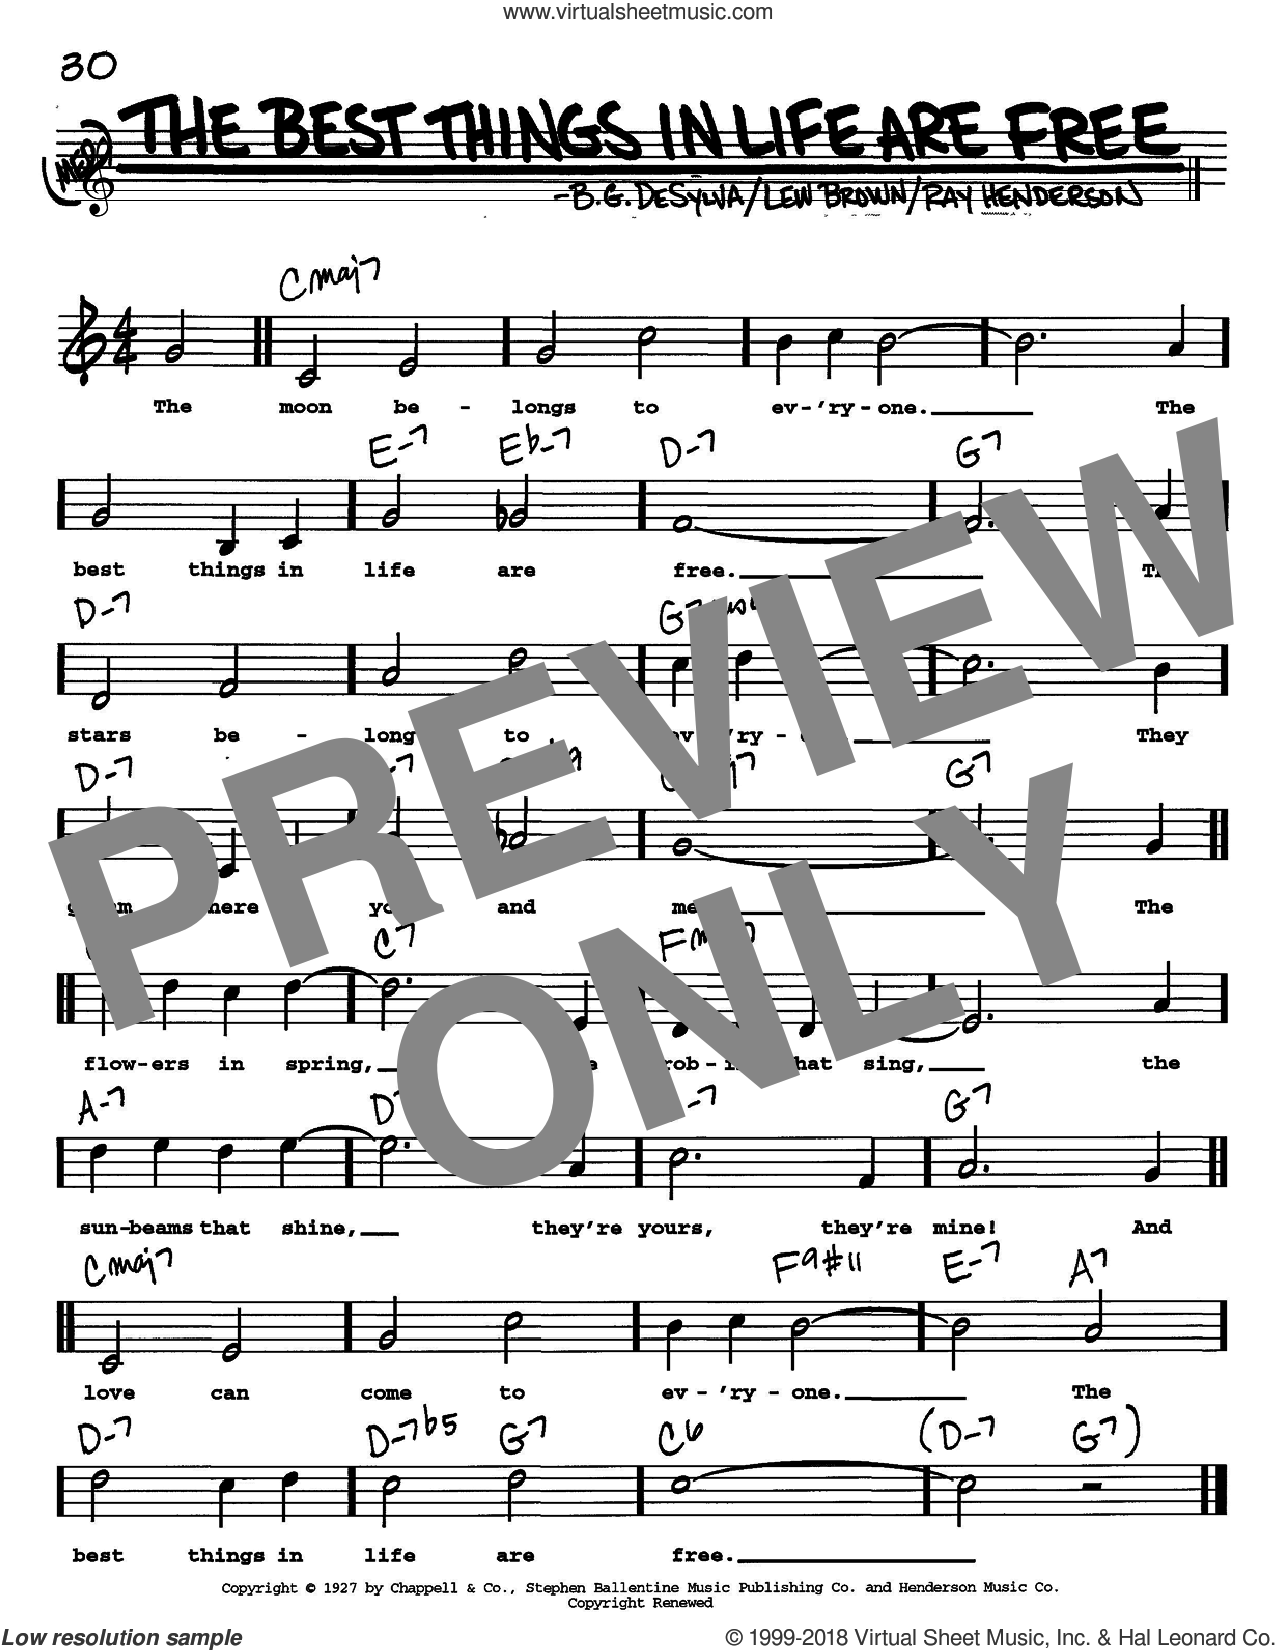 The Best Things In Life Are Free sheet music for voice and other instruments  by Buddy DeSylva, Lew Brown and Ray Henderson, intermediate skill level